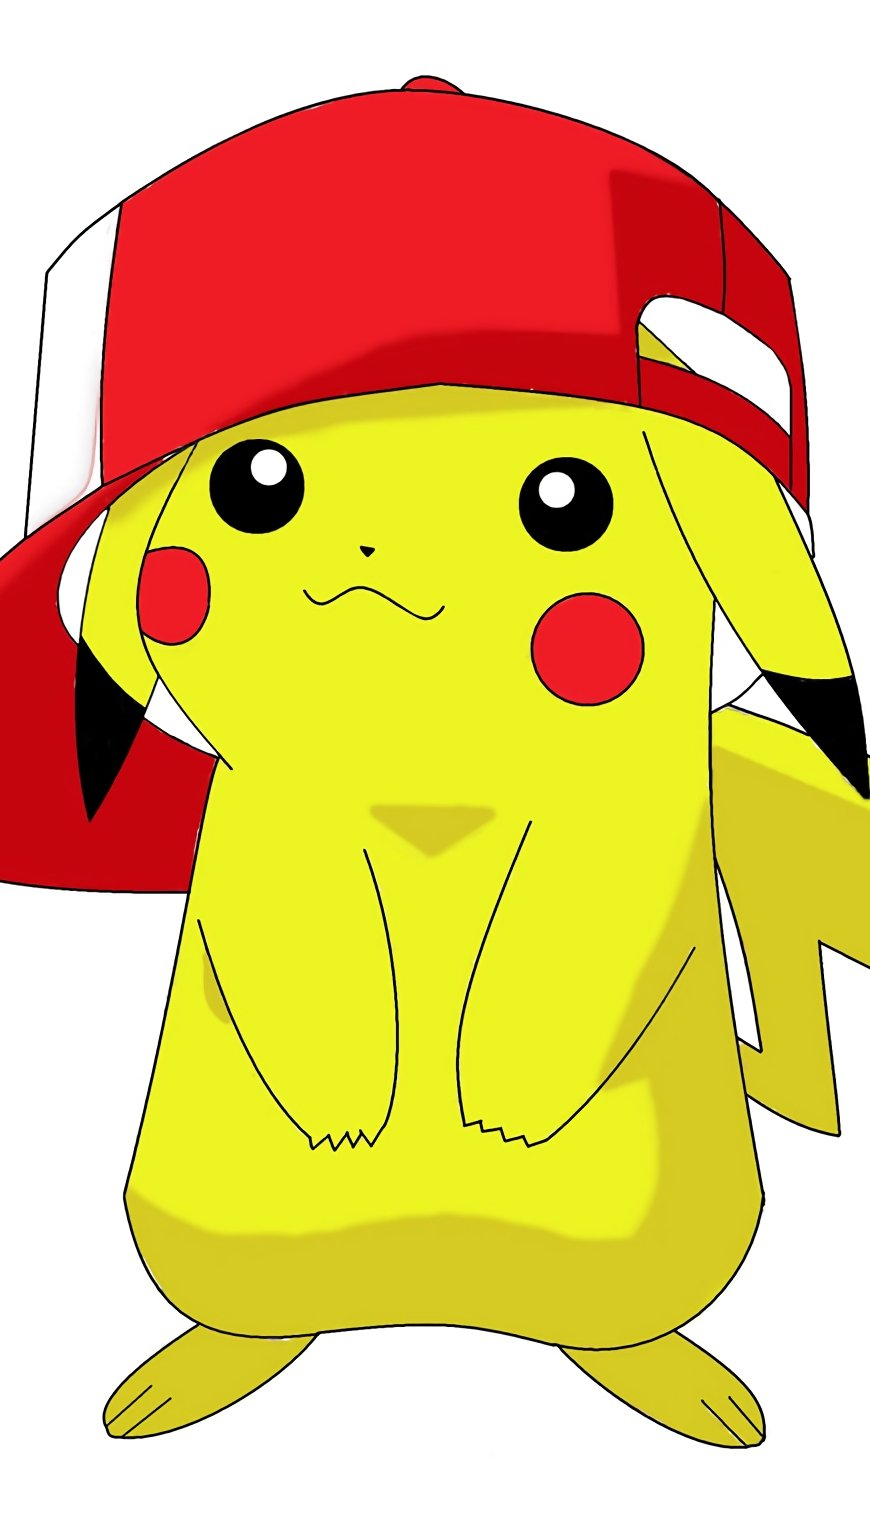 Anime Wallpaper Pikachu with cap Vertical